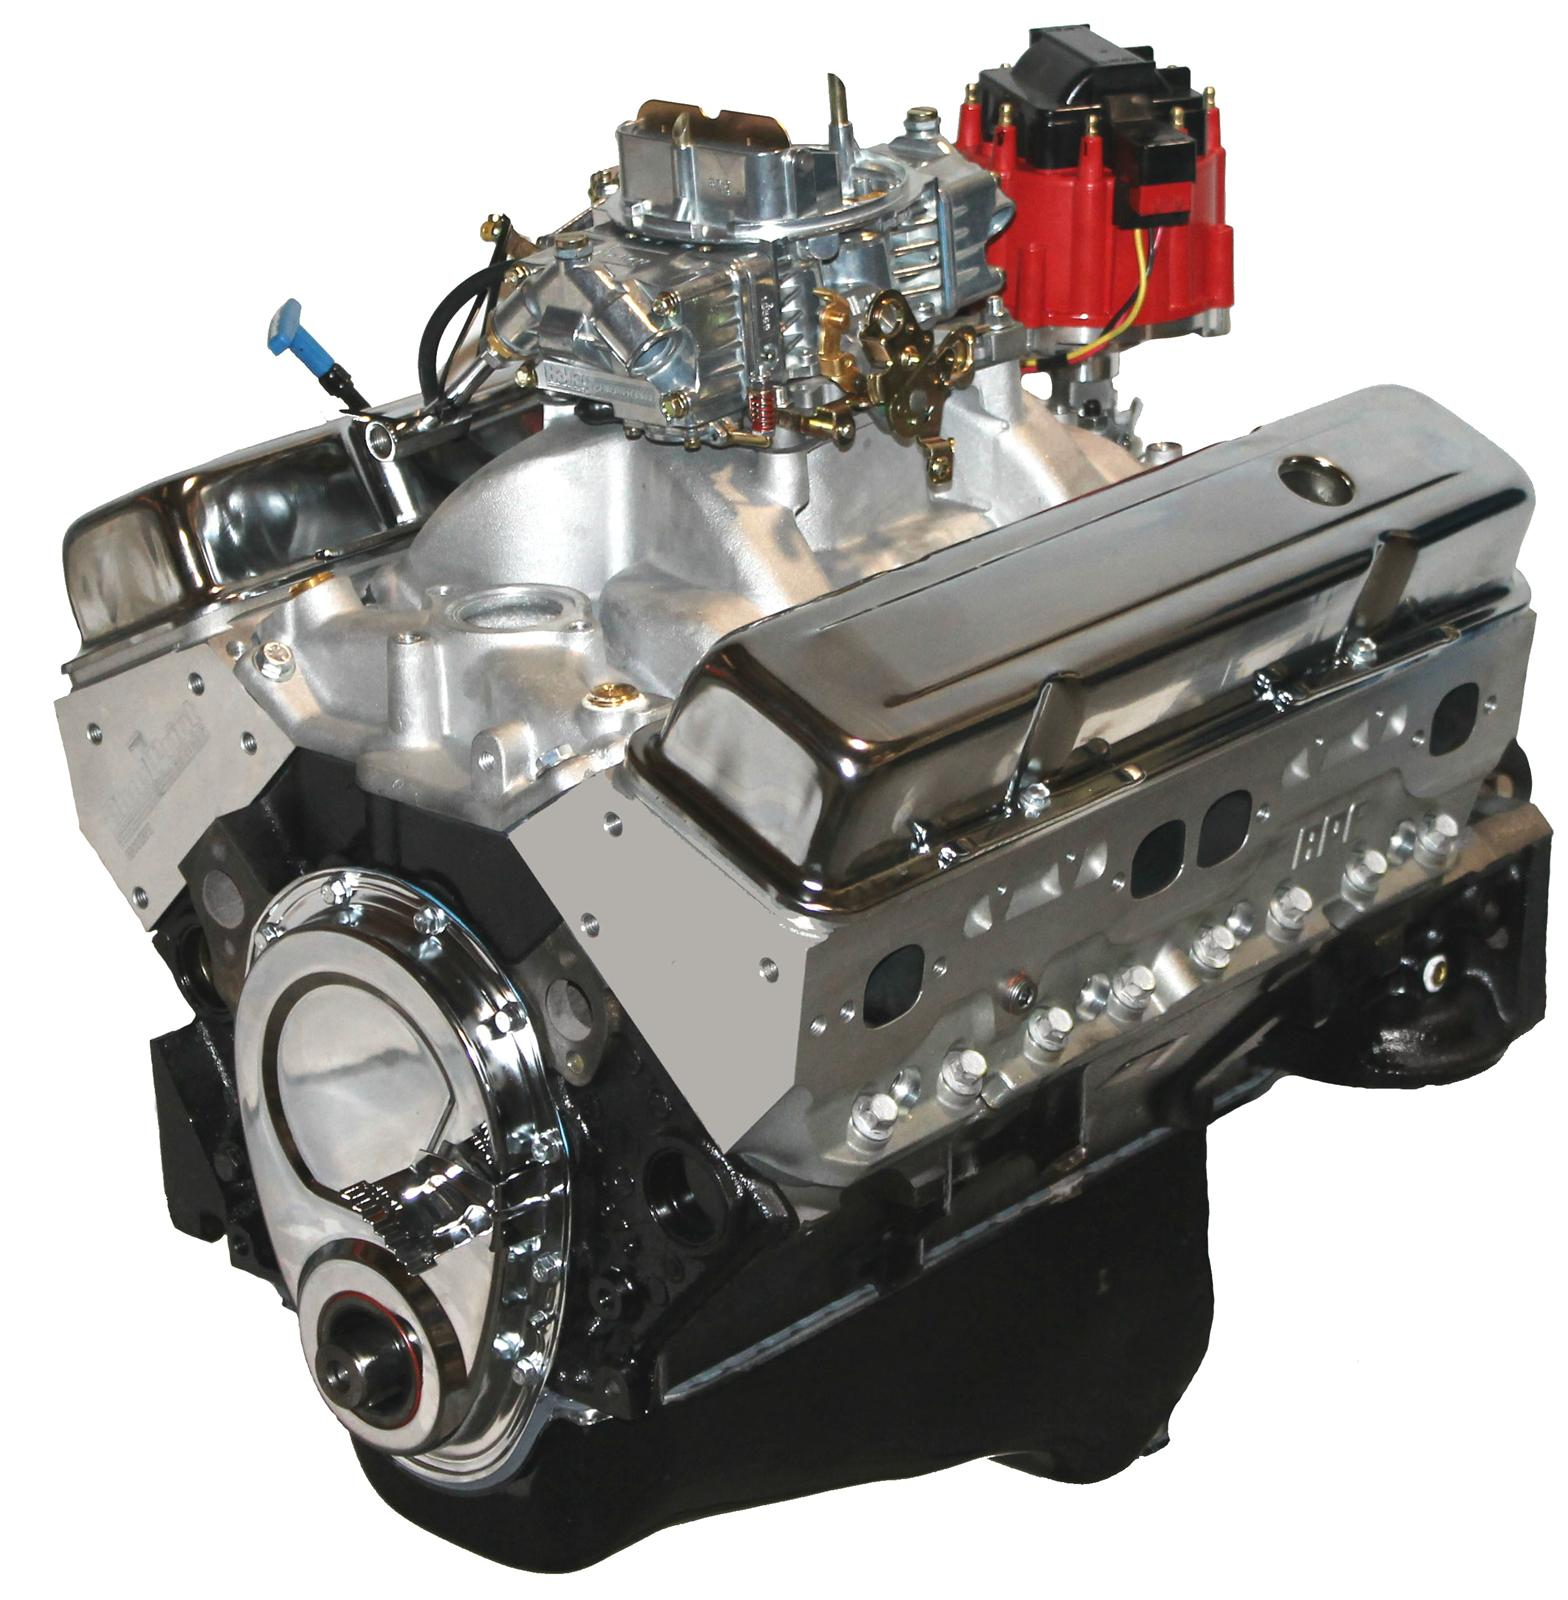 Blueprint engines gm 383 cid 430hp stroker base dressed crate blueprint engines gm 383 cid 430hp stroker base dressed crate engines w aluminum heads bp38313ctc1 free shipping on orders over 99 at summit racing malvernweather